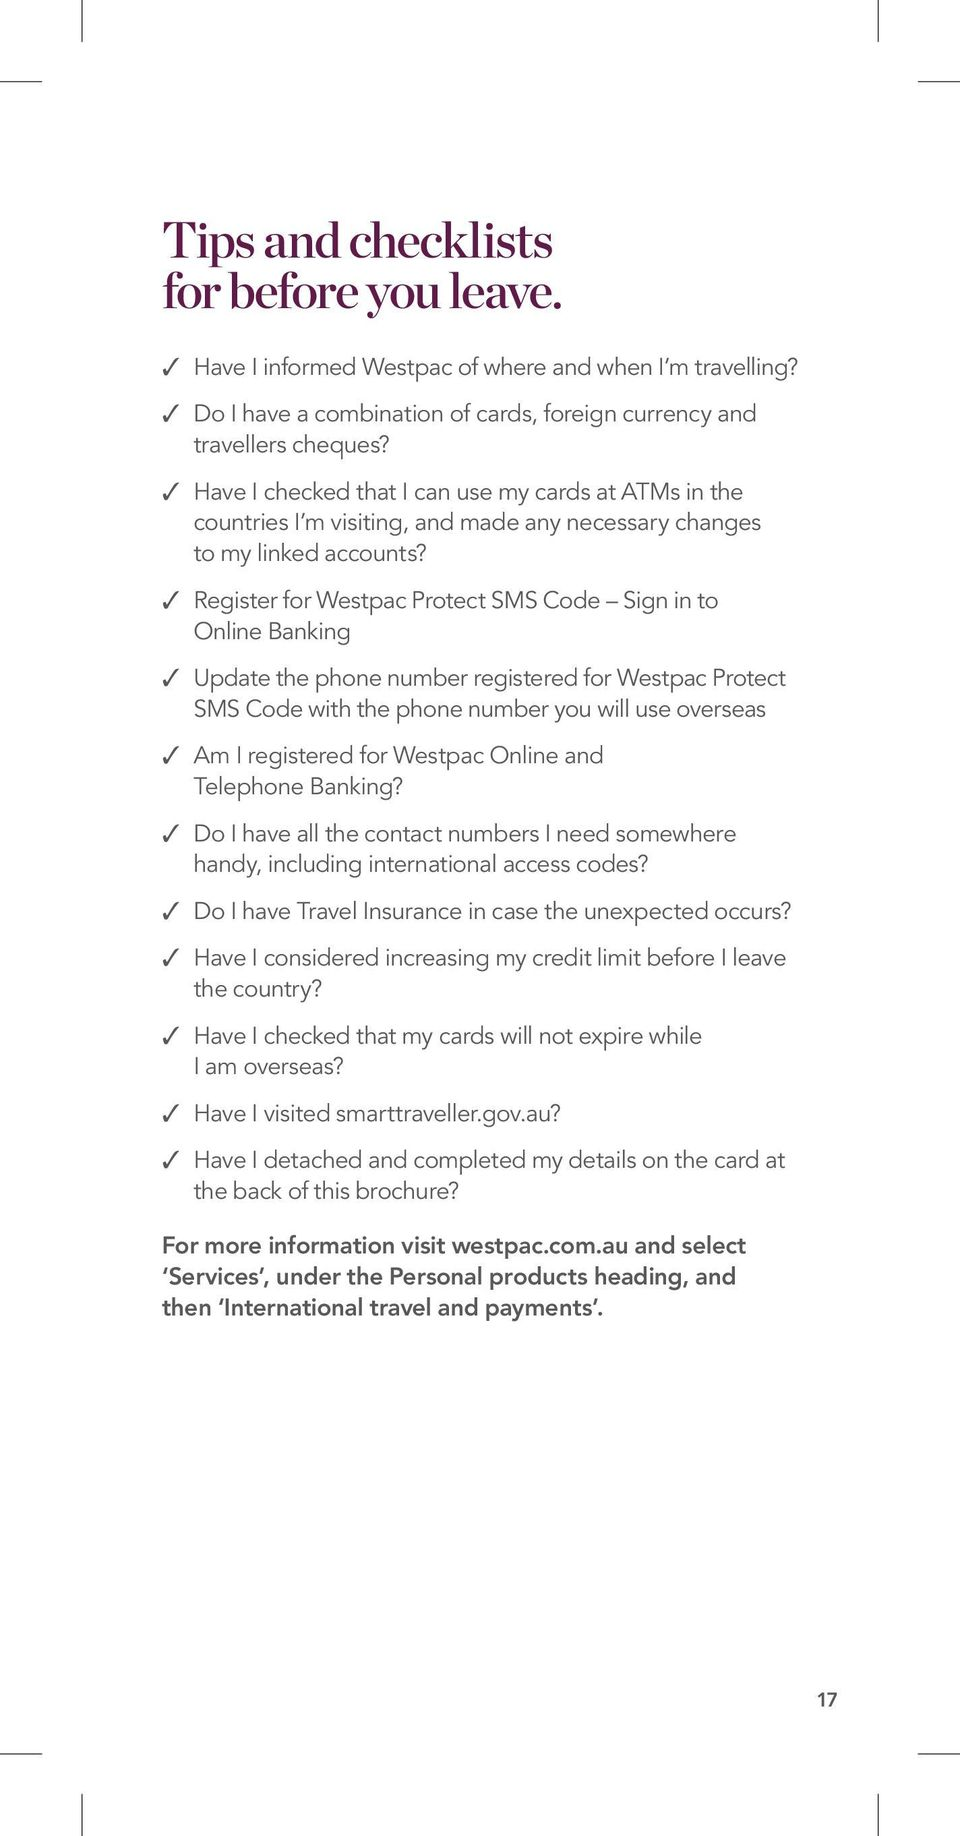 a banking guide for overseas travel - PDF